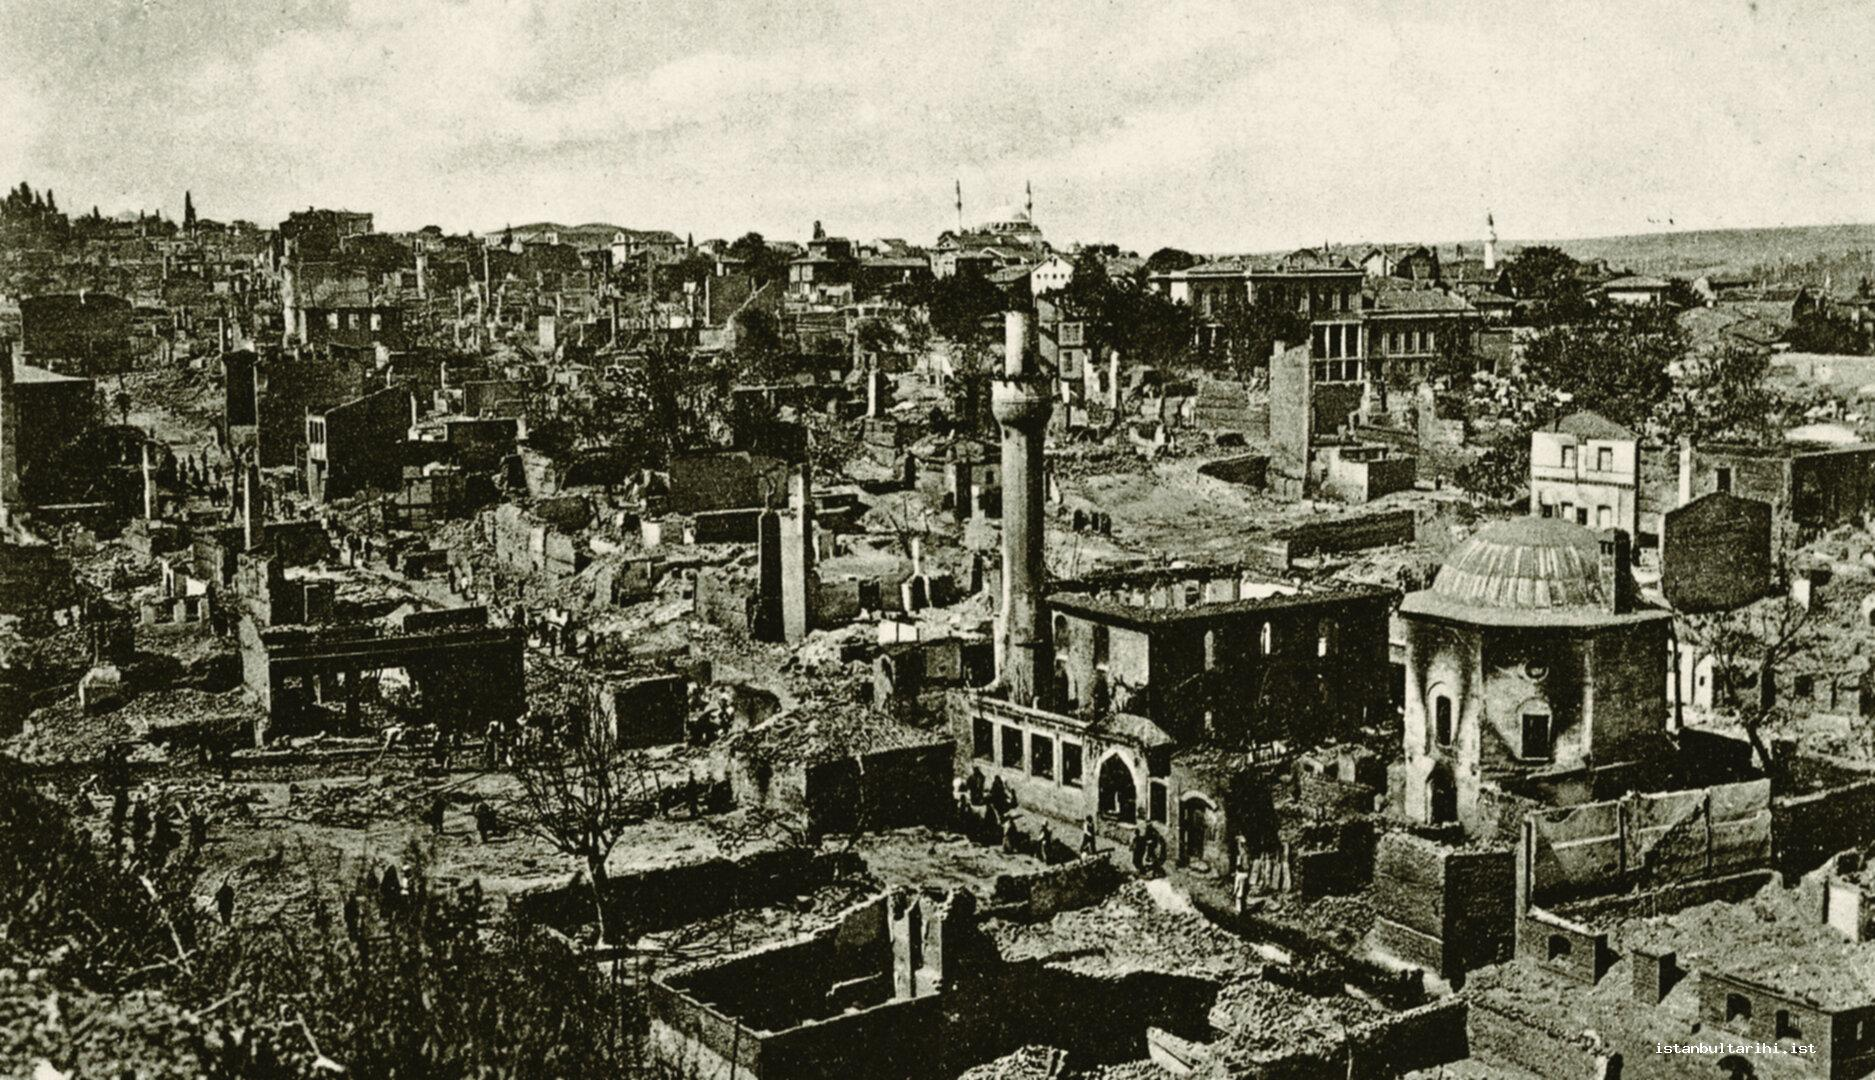 11- A scene from the city after 1908 Fire